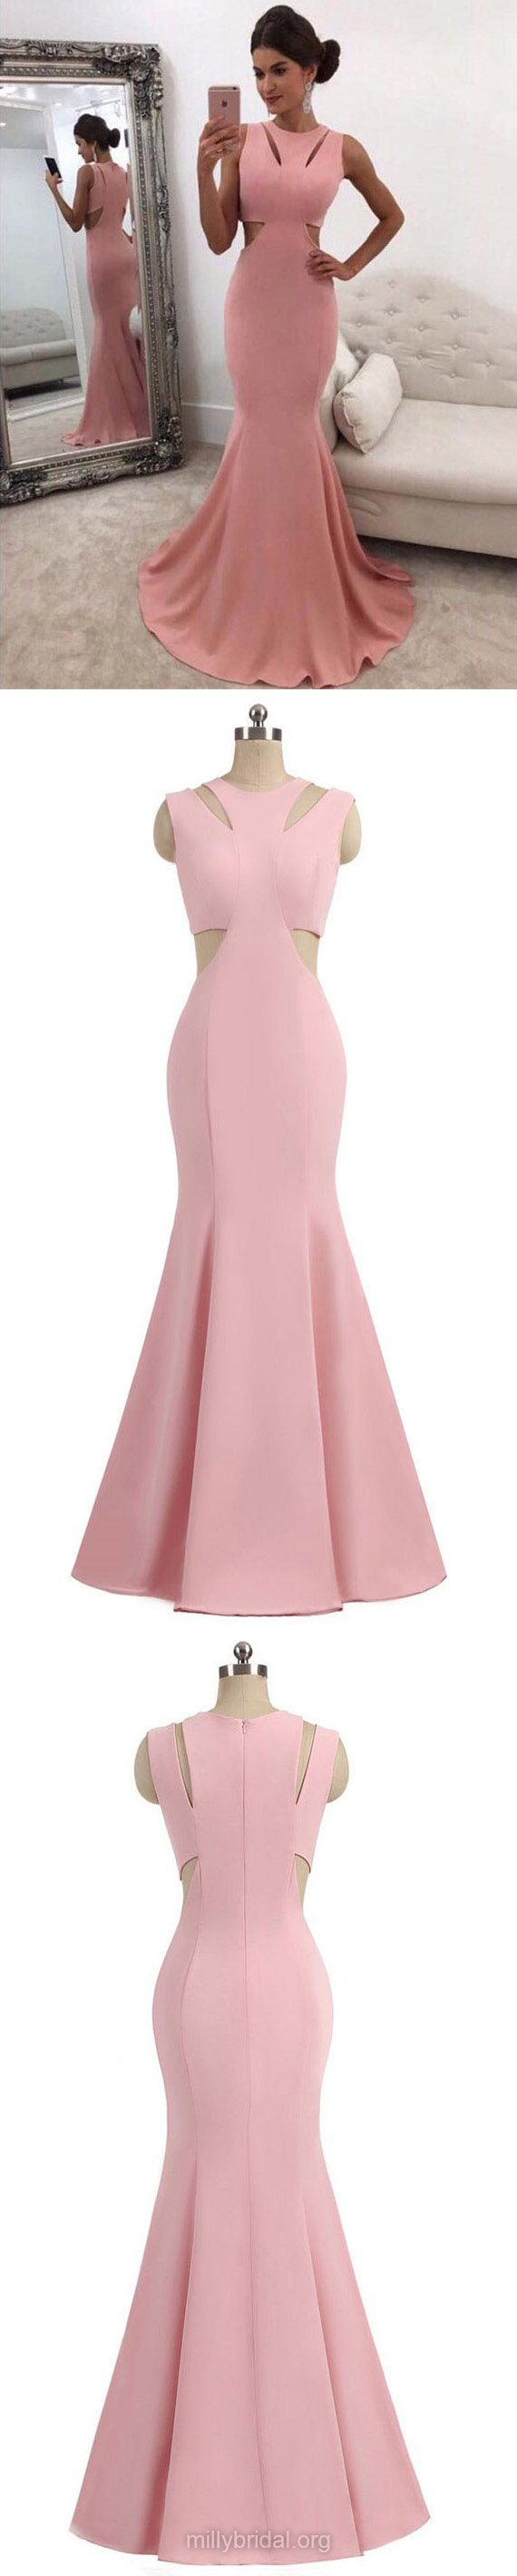 Pink Prom Dresses, Long Prom Dresses, 2018 Prom Dresses For Teens, Trumpet/Mermaid Prom Dresses Scoop Neck, Silk-like Satin Prom Dresses Ruffles #formaldress #pinkdress